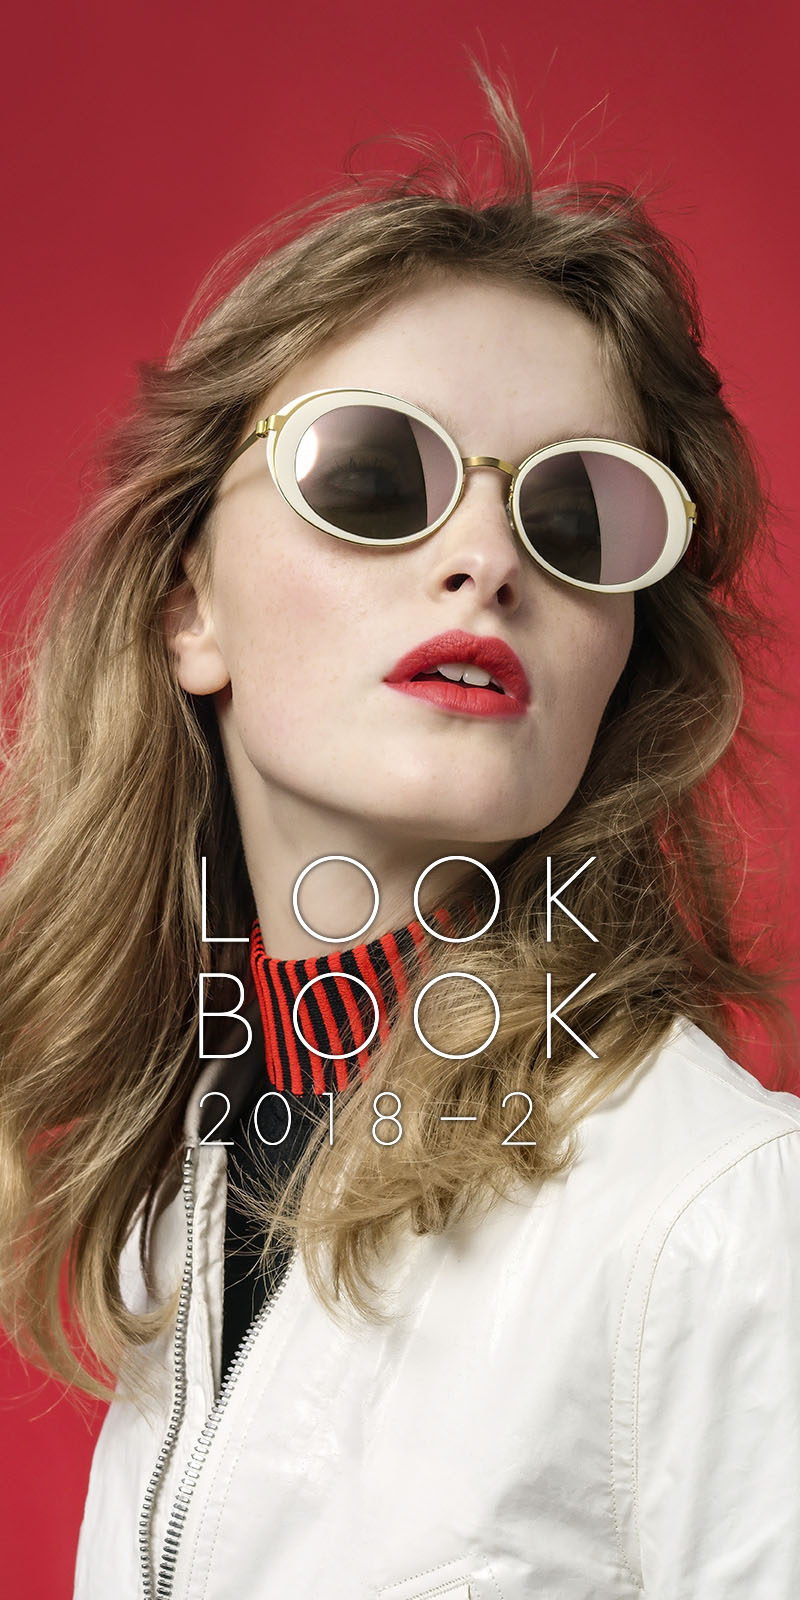 LINDBERG Lookbook